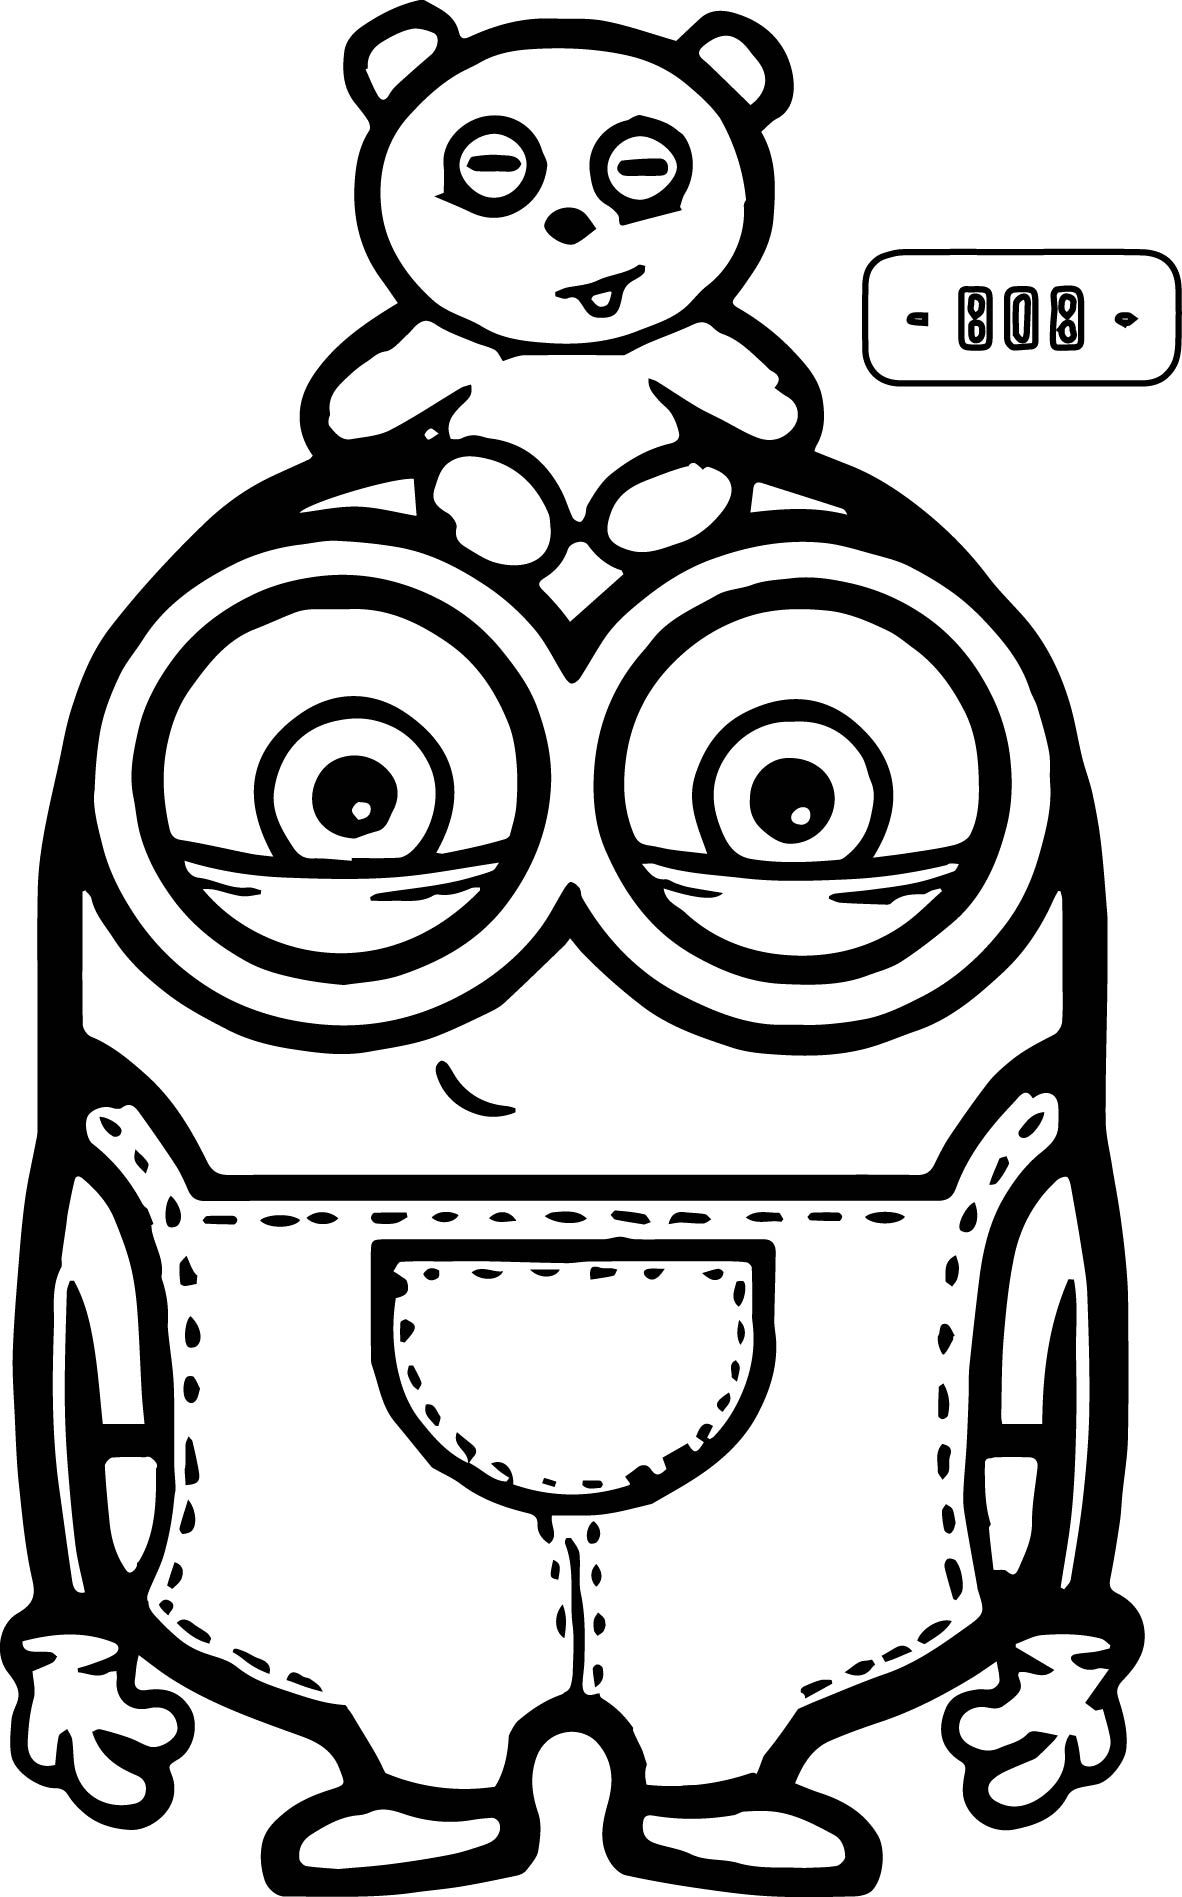 coloring pages of minions Cute Bob And Bear Minions Coloring Page | Coloring/ worksheets  coloring pages of minions